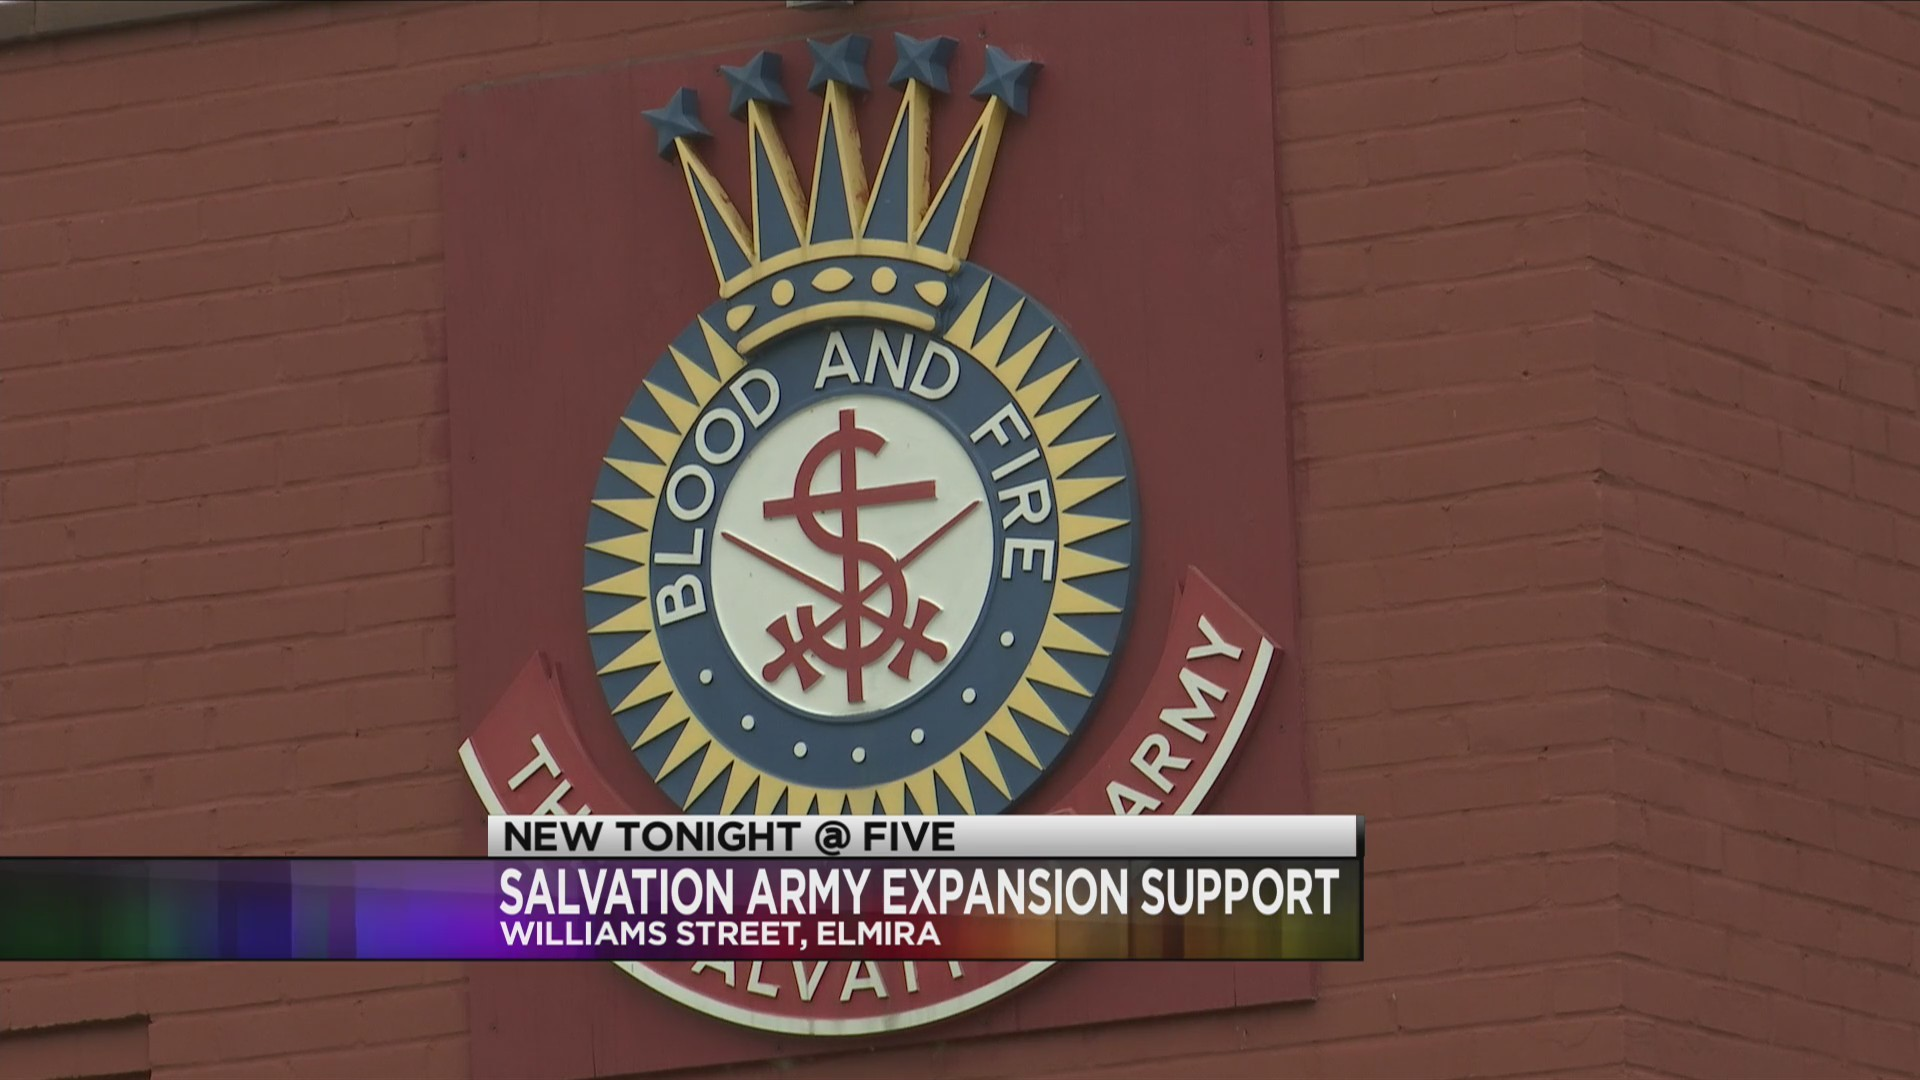 Elmira city council to support new Salvation Army project